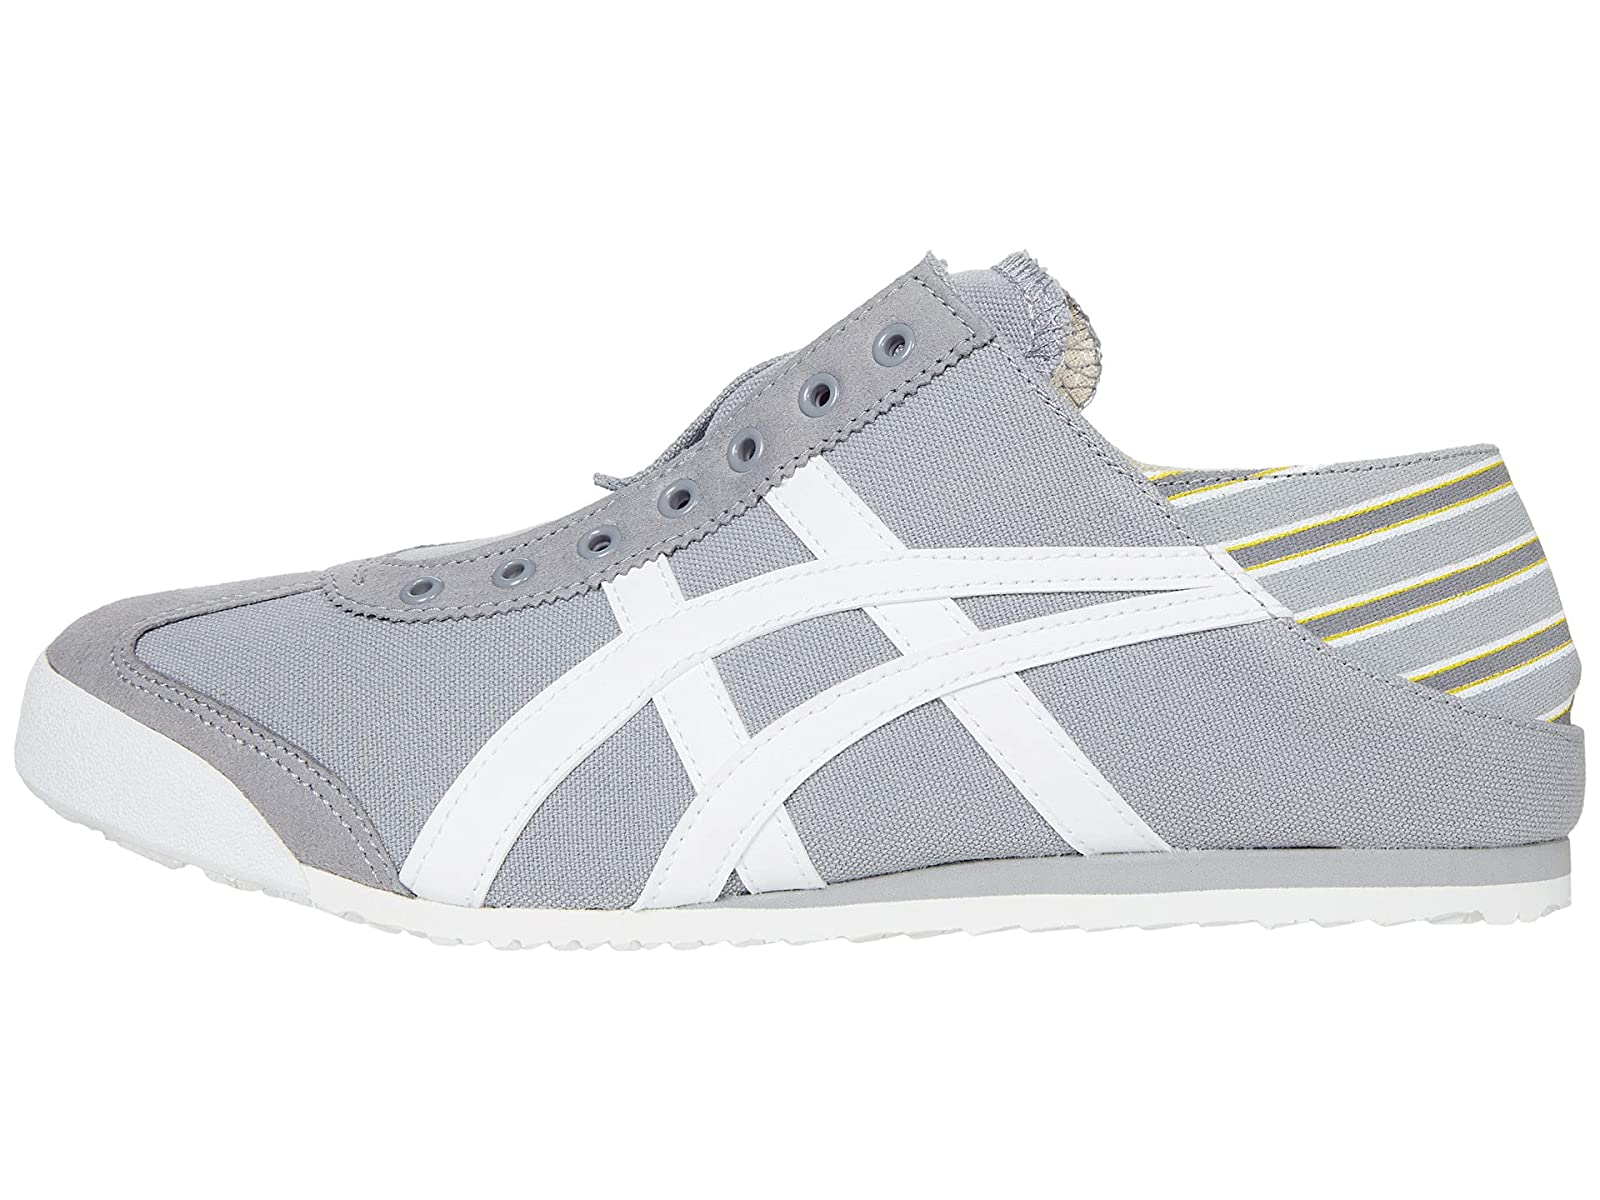 miniature 11 - Adulte Unisexe Baskets & Athlétique Chaussures Onitsuka Tiger Mexico 66 Paraty